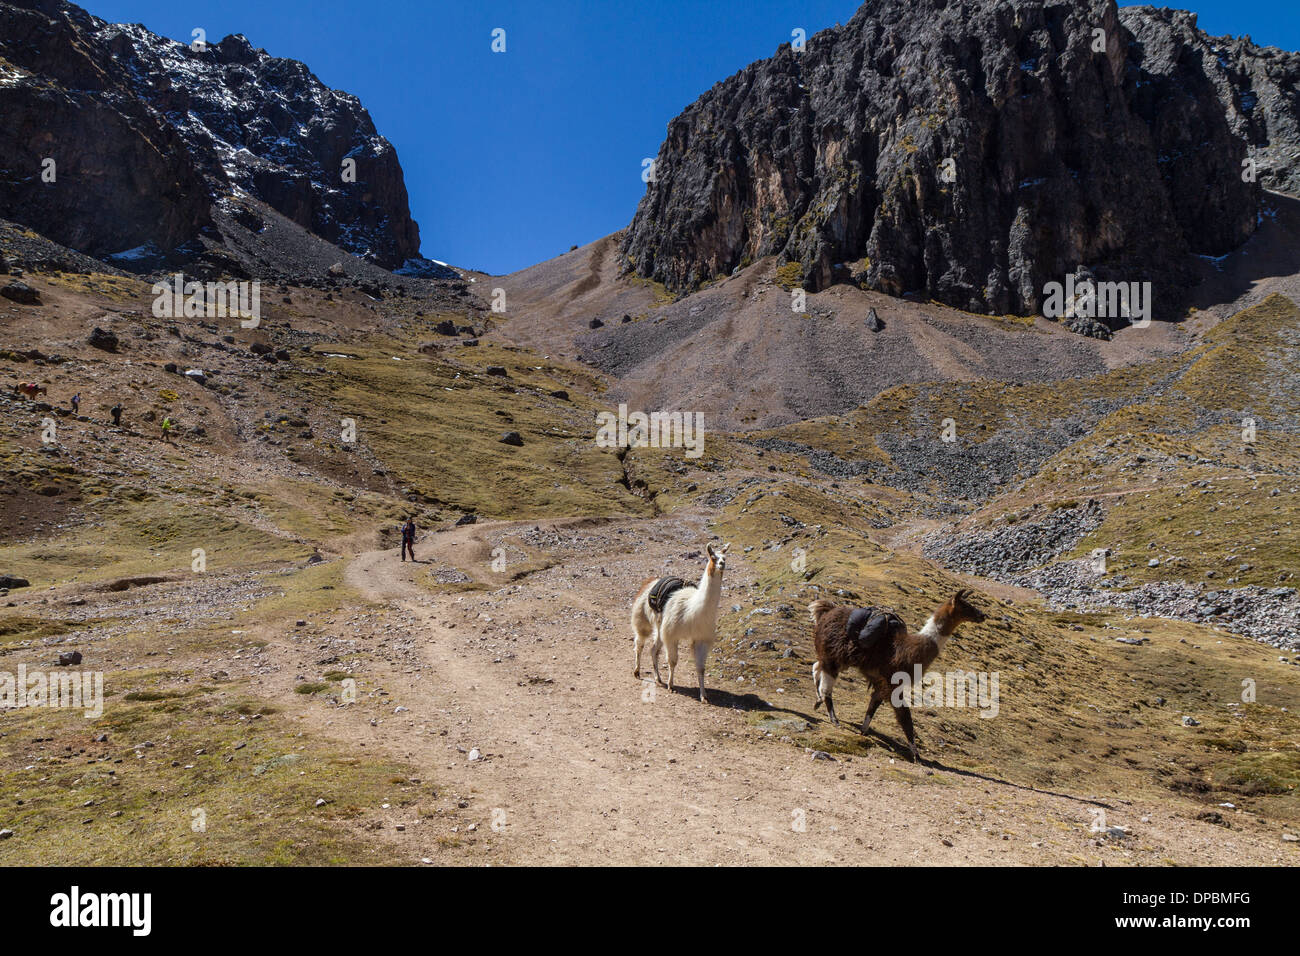 Llamas carrying luggage over a pass on the lares Trek, Peru - Stock Image